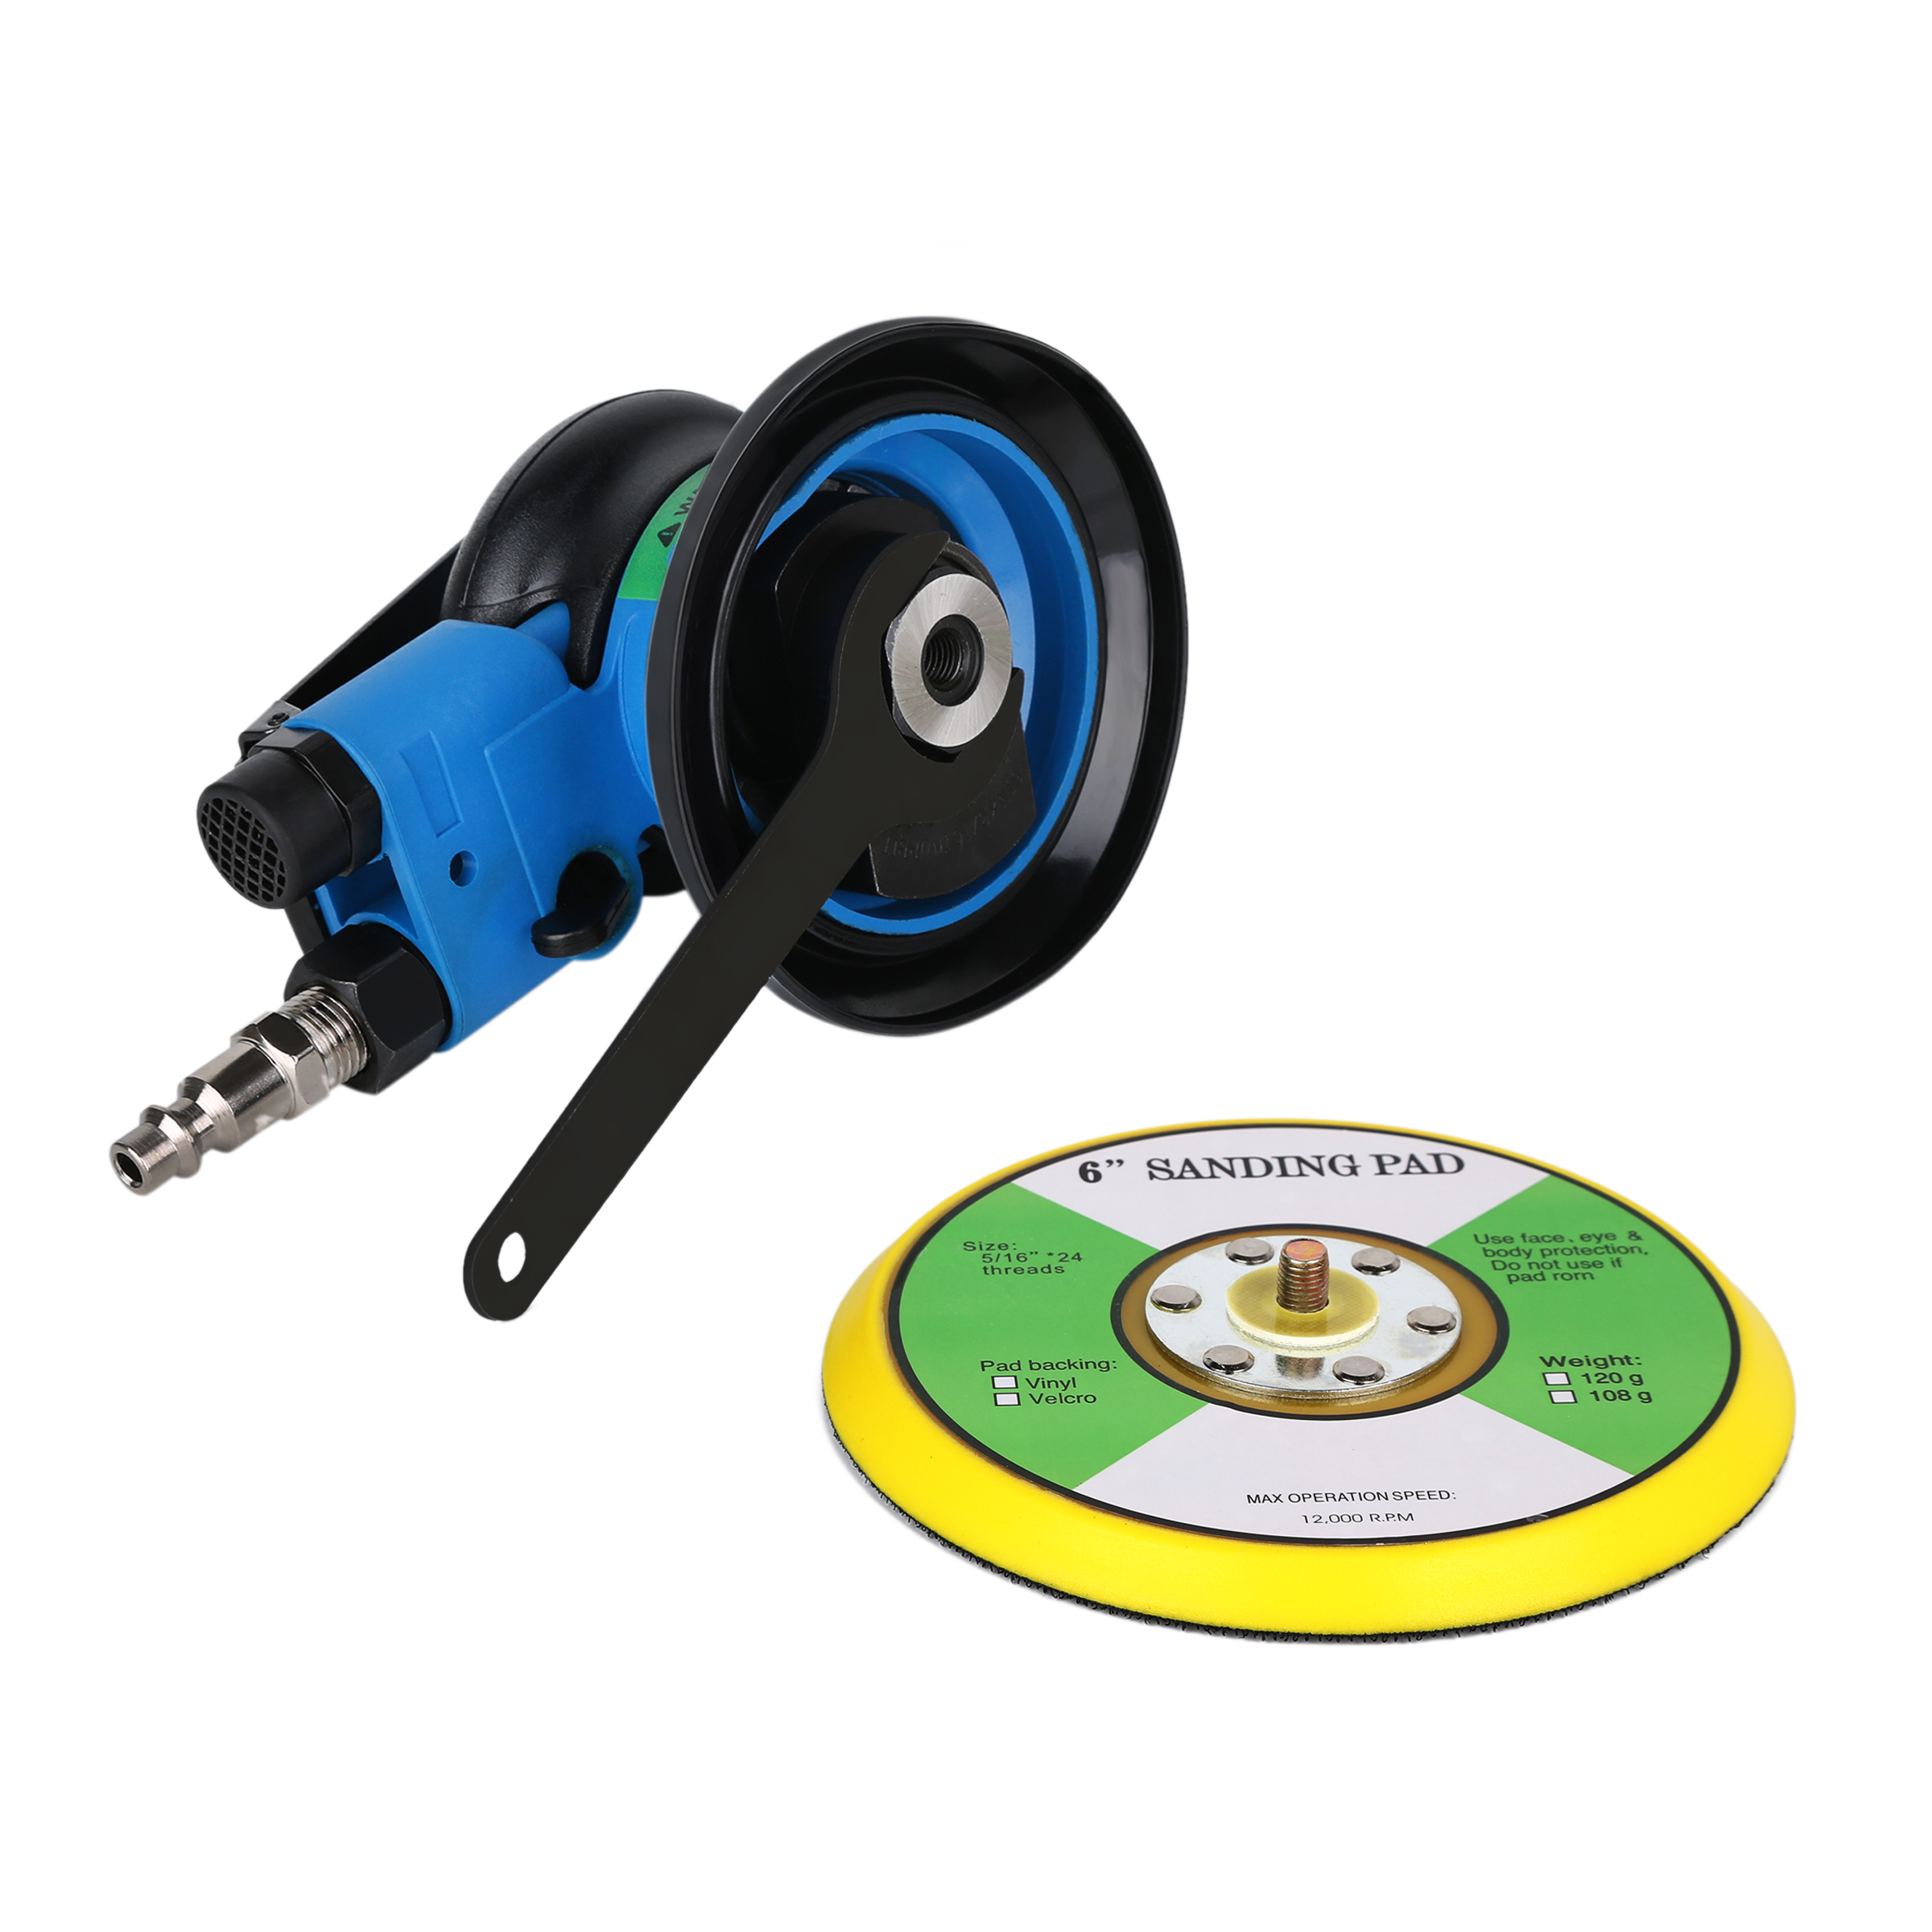 Tools : STARY 6 inch Polisher 12000RPM No-Load Speed 152mm Car Paint Care Tool Polishing Machine Sander Air  Woodworking Polisher